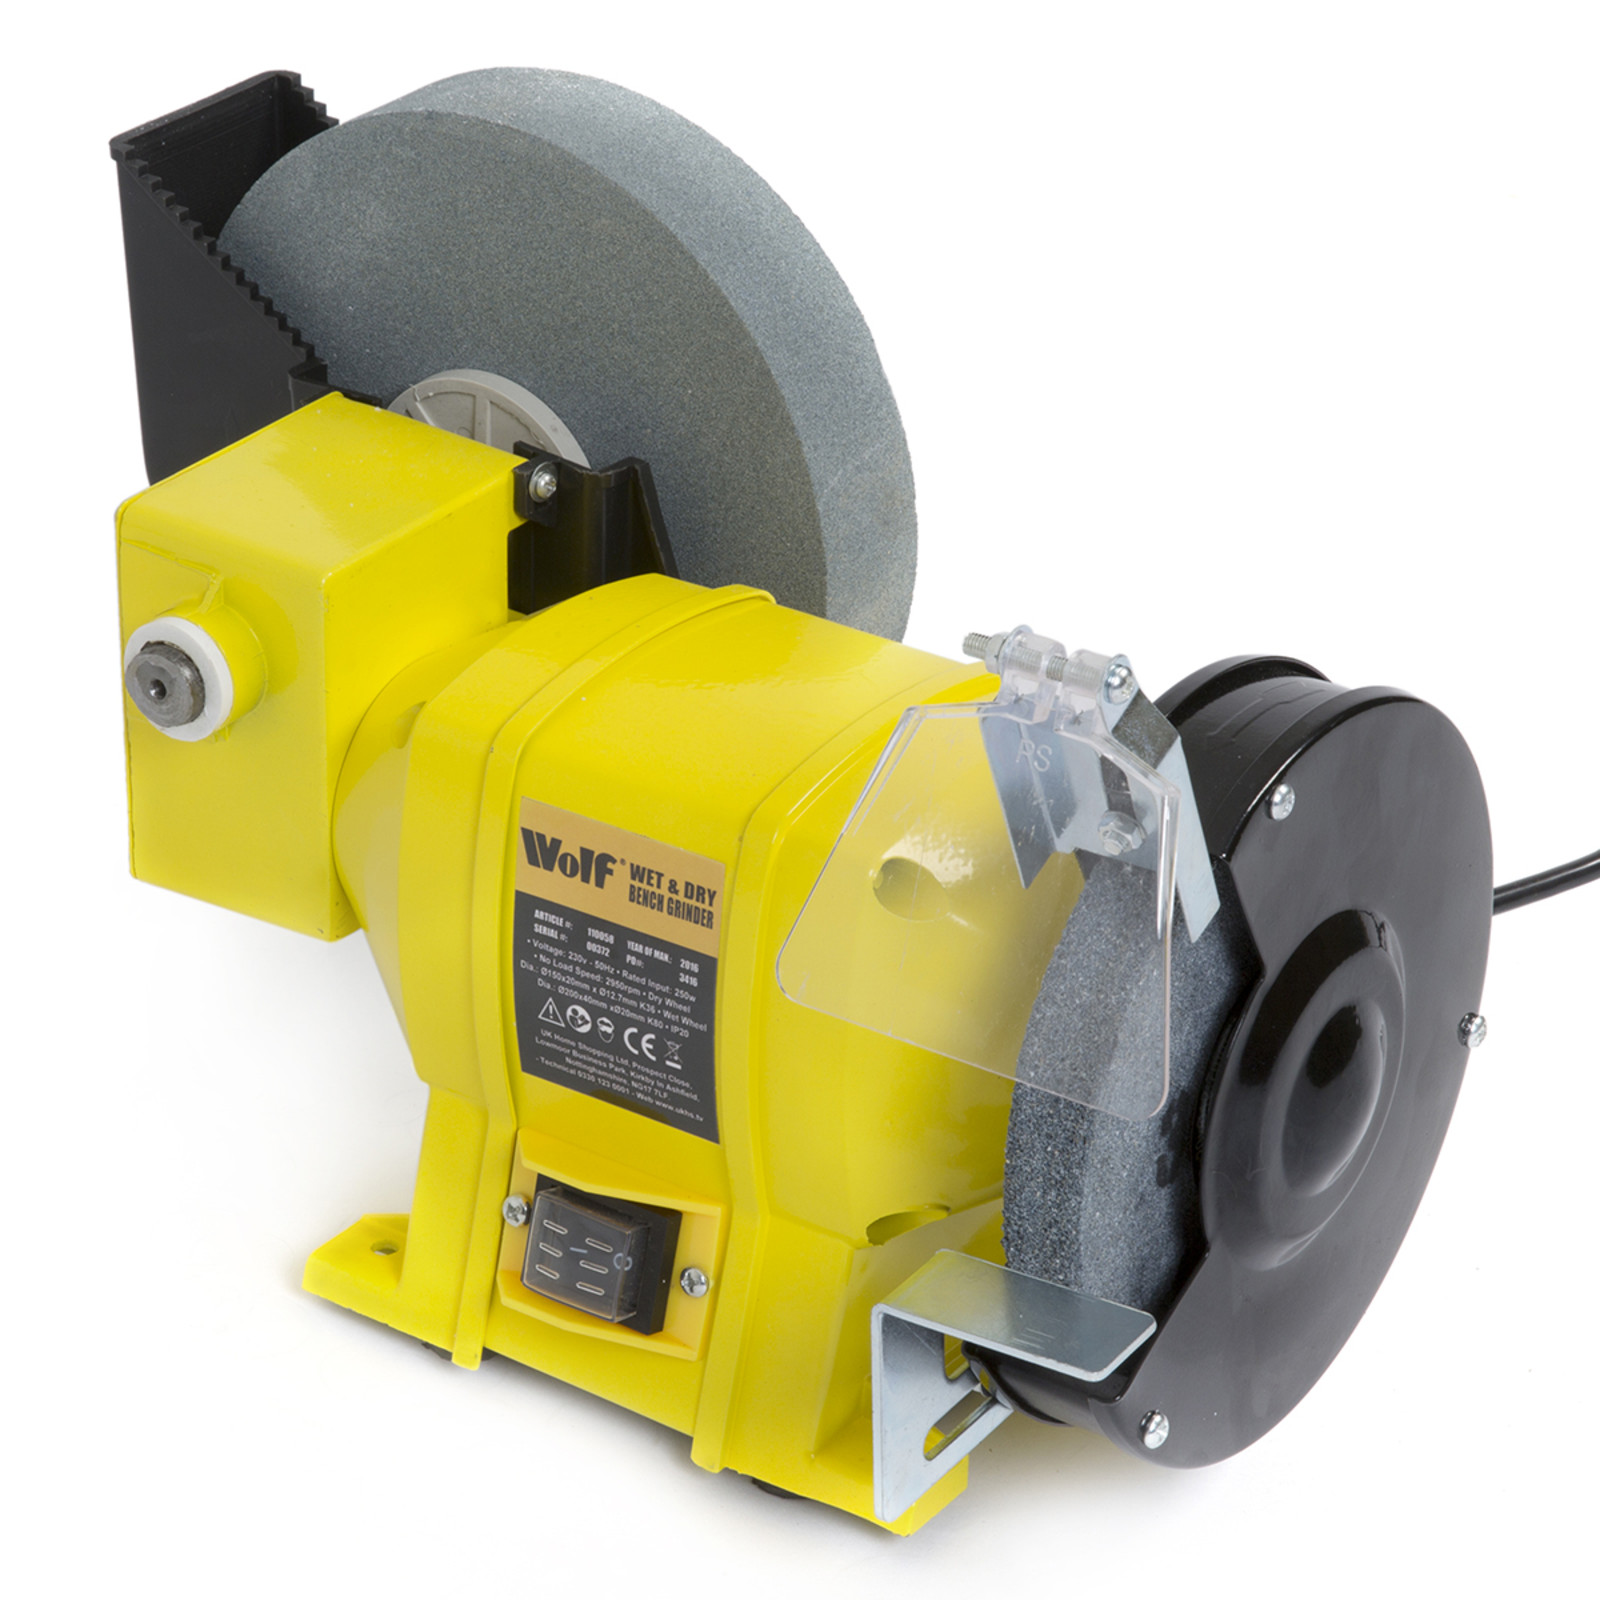 Wet Bench Grinder Reviews Benches